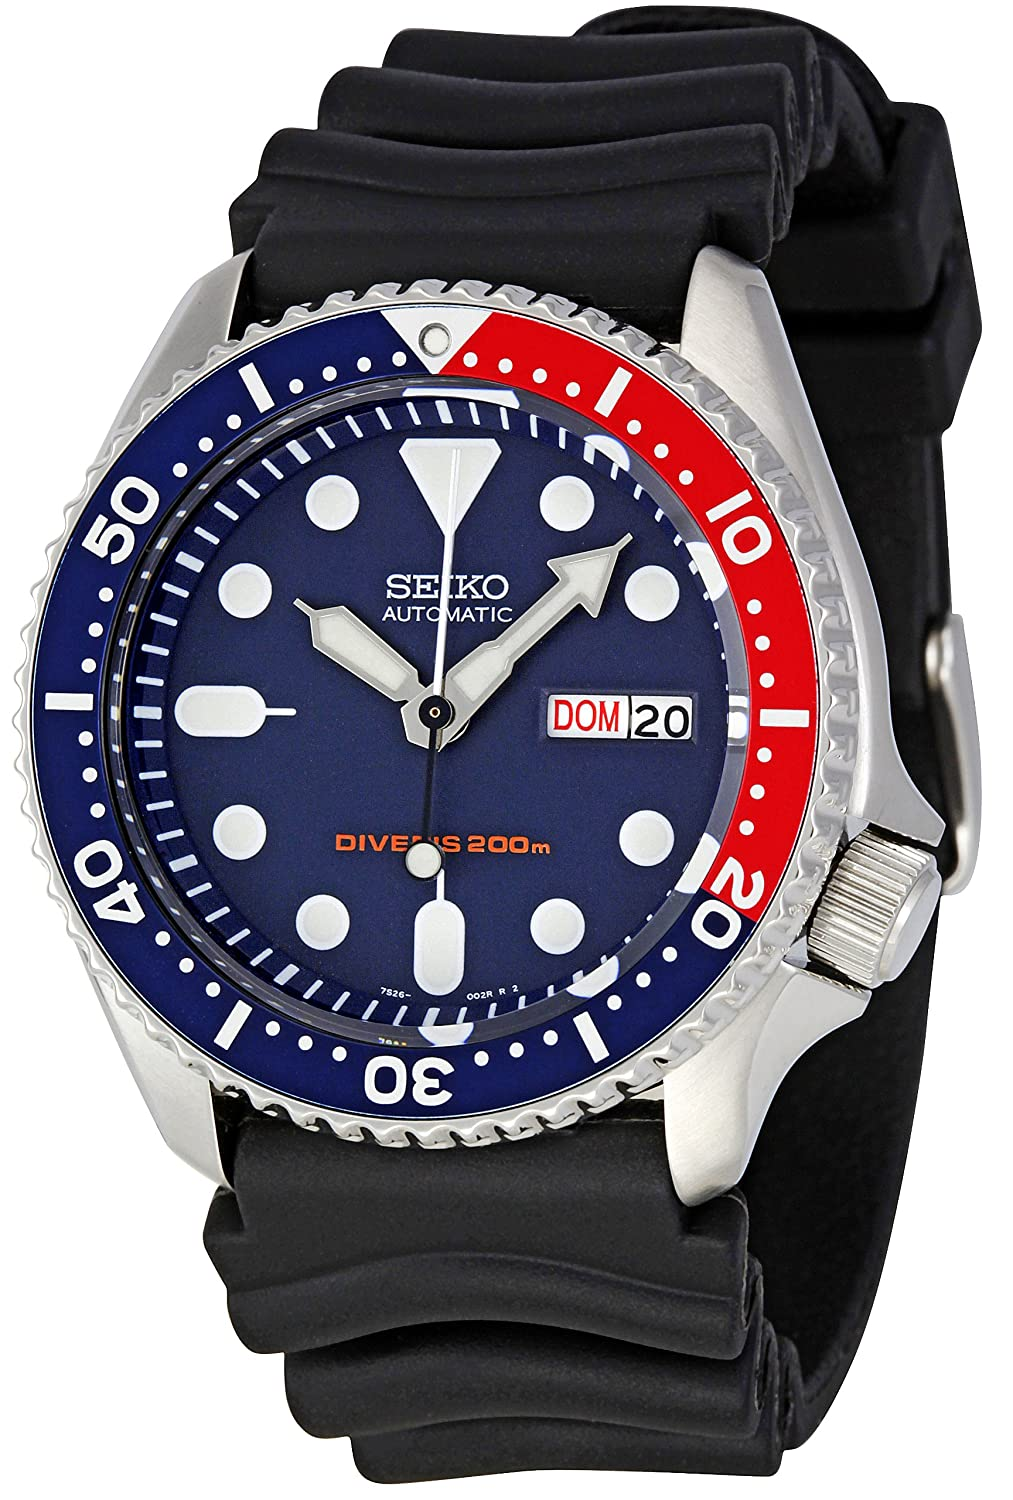 brands buy best eco drive diver shop dive singapore usa citizen watches price scuba promaster watch htm